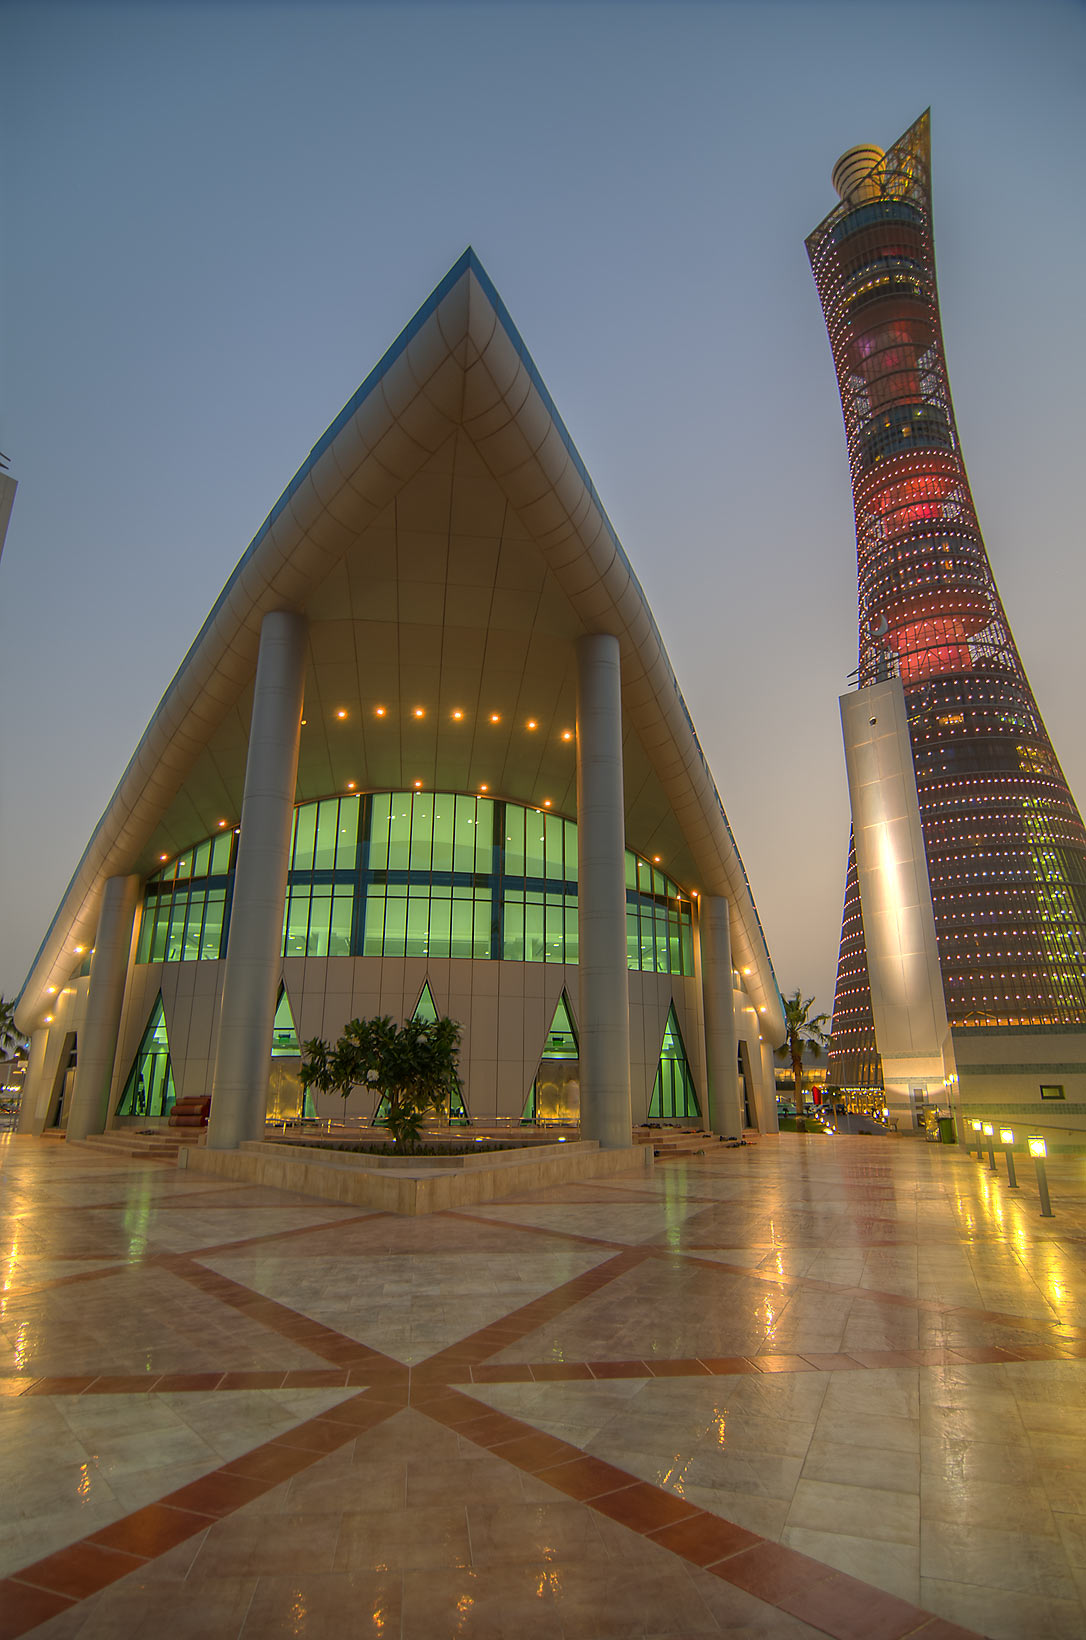 Aspire Zone Mosque and Torch Tower at evening. Doha, Qatar